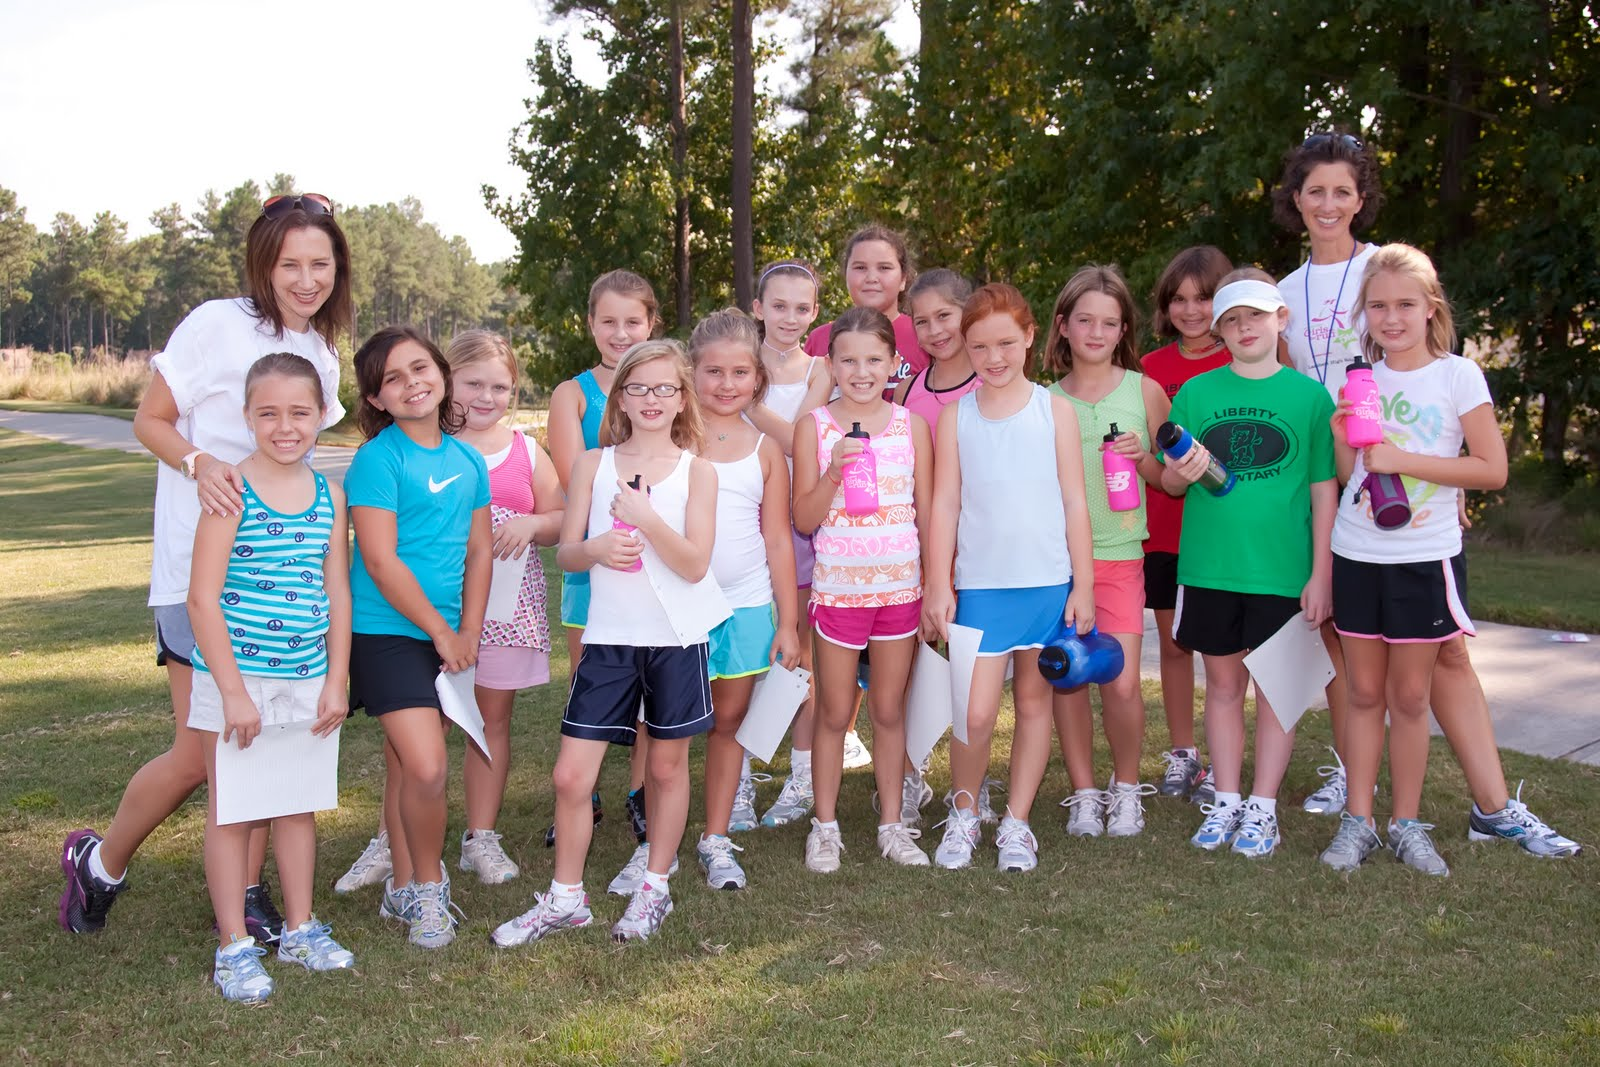 ... pre-teen girls to develop self respect and healthy lifestyle through